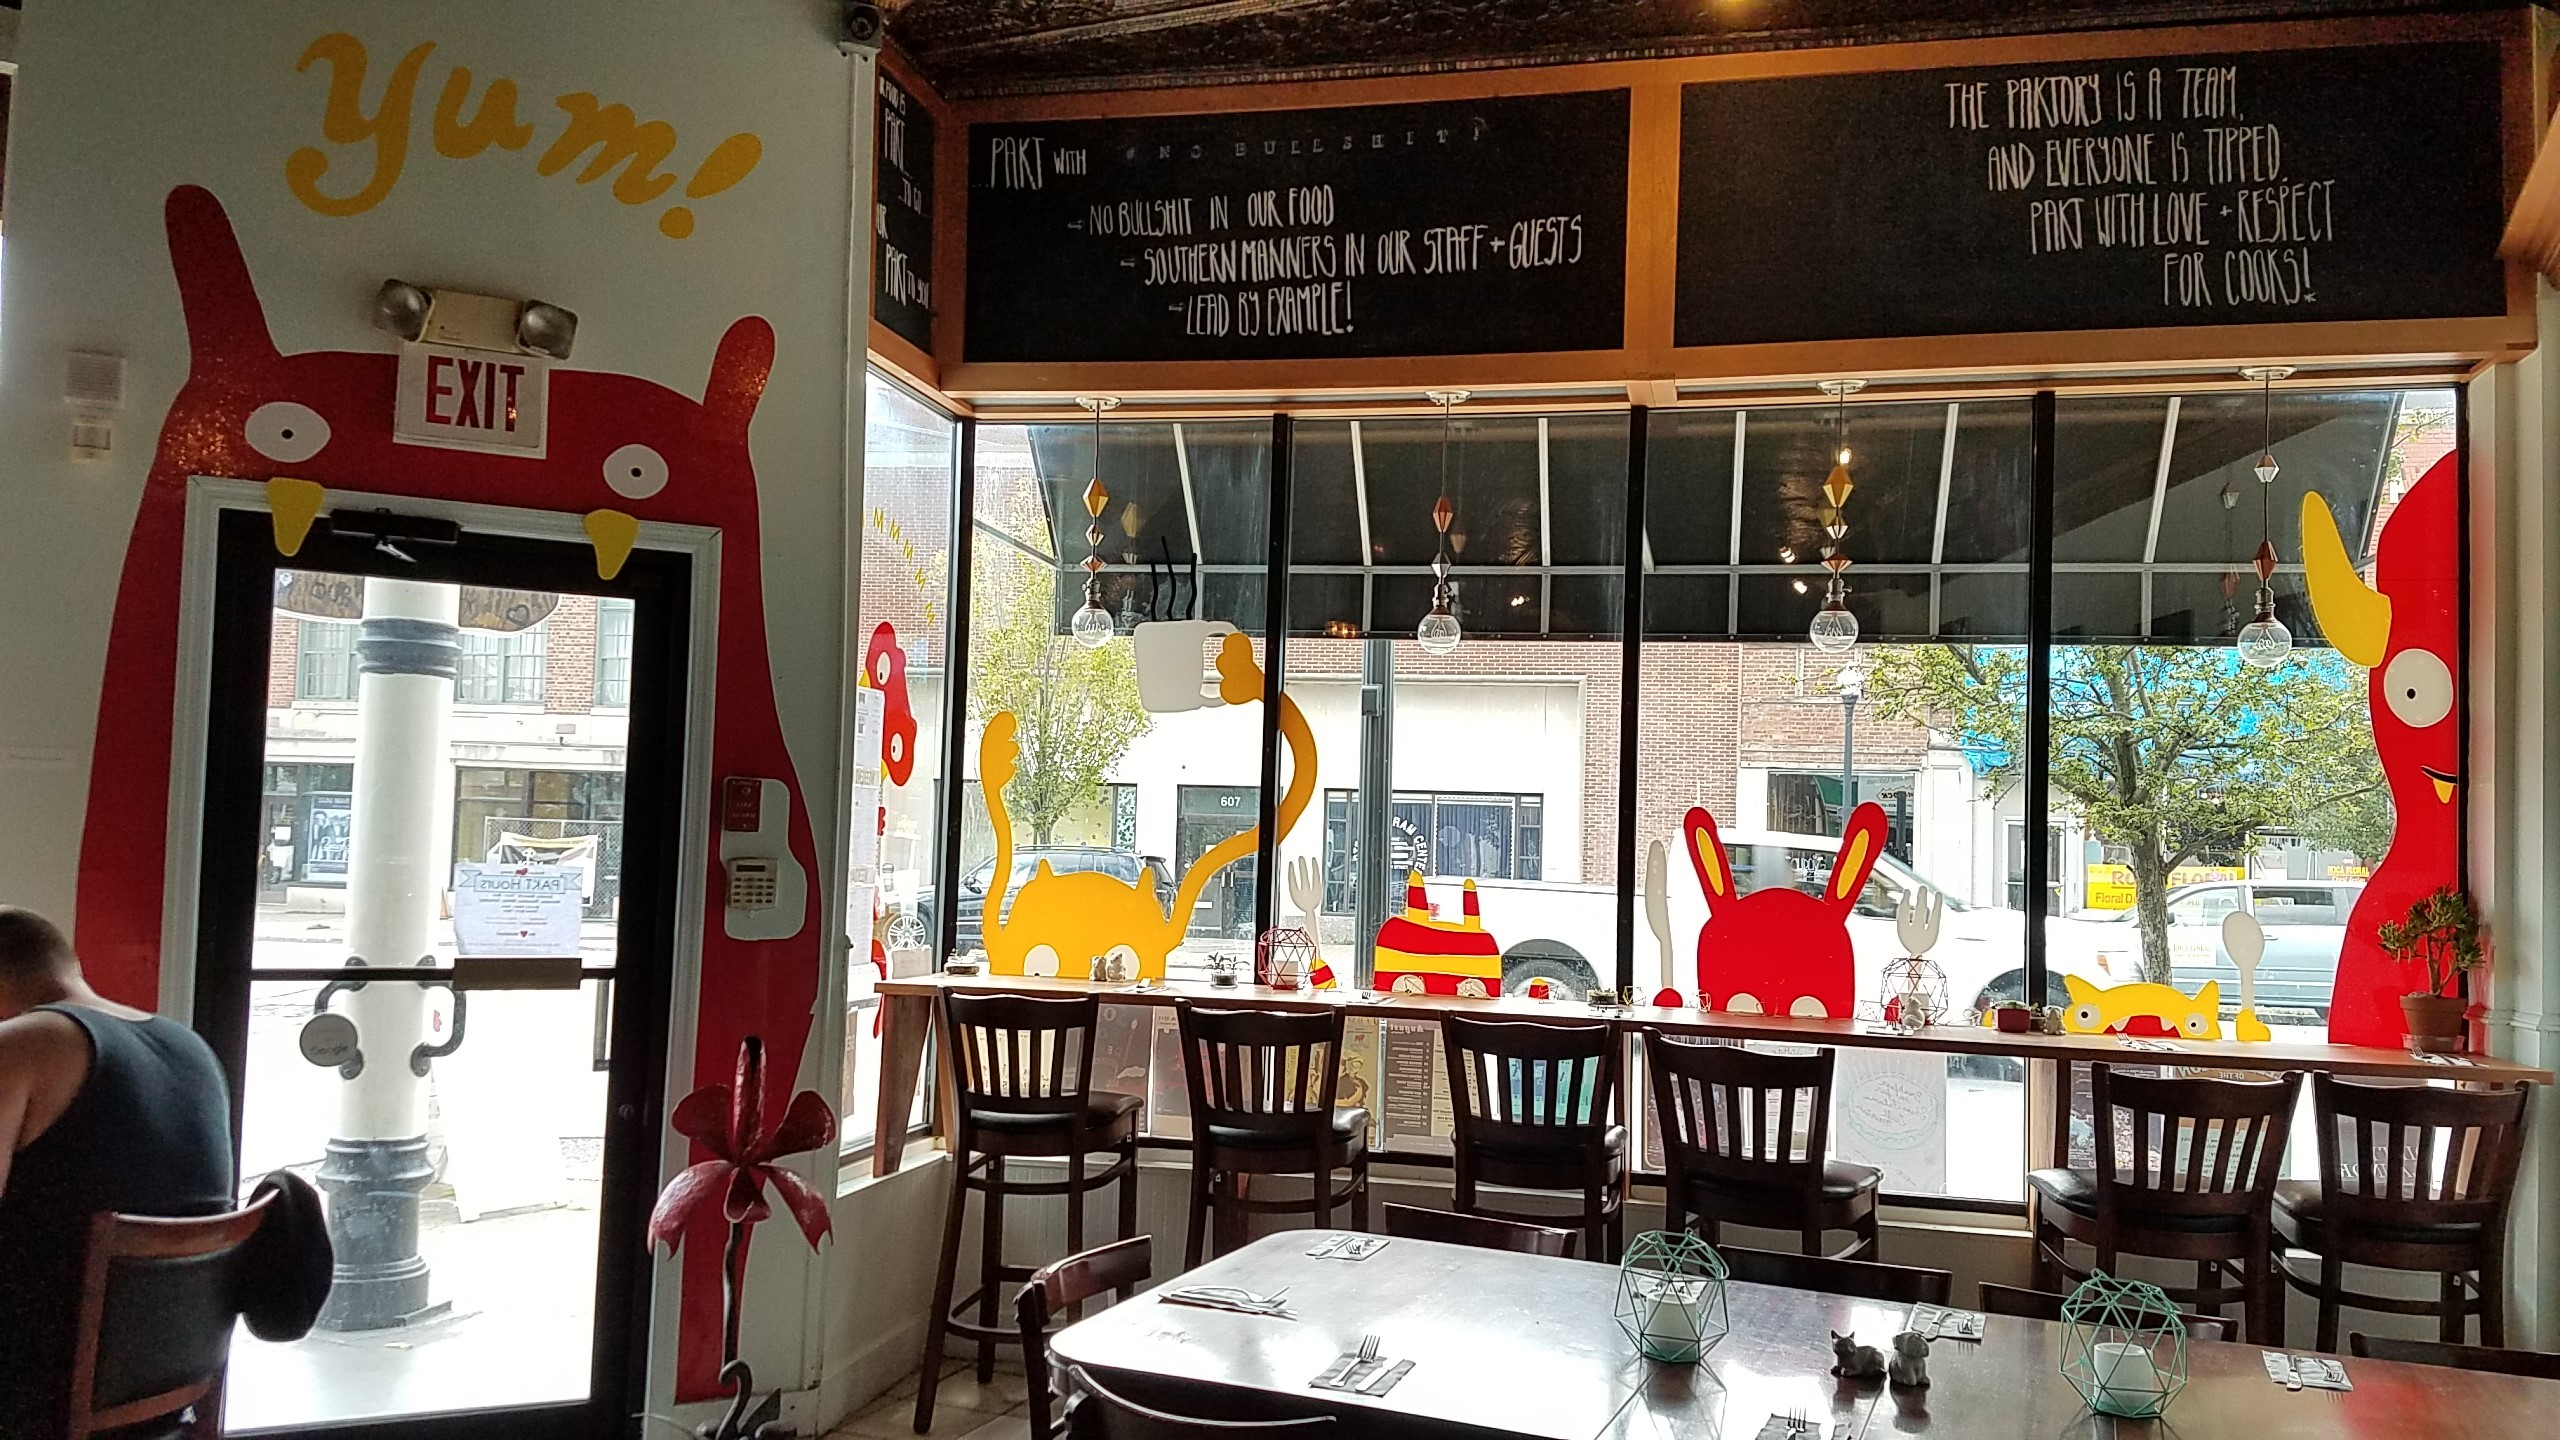 PAKT and other hot spots for brunch - Around the Valley